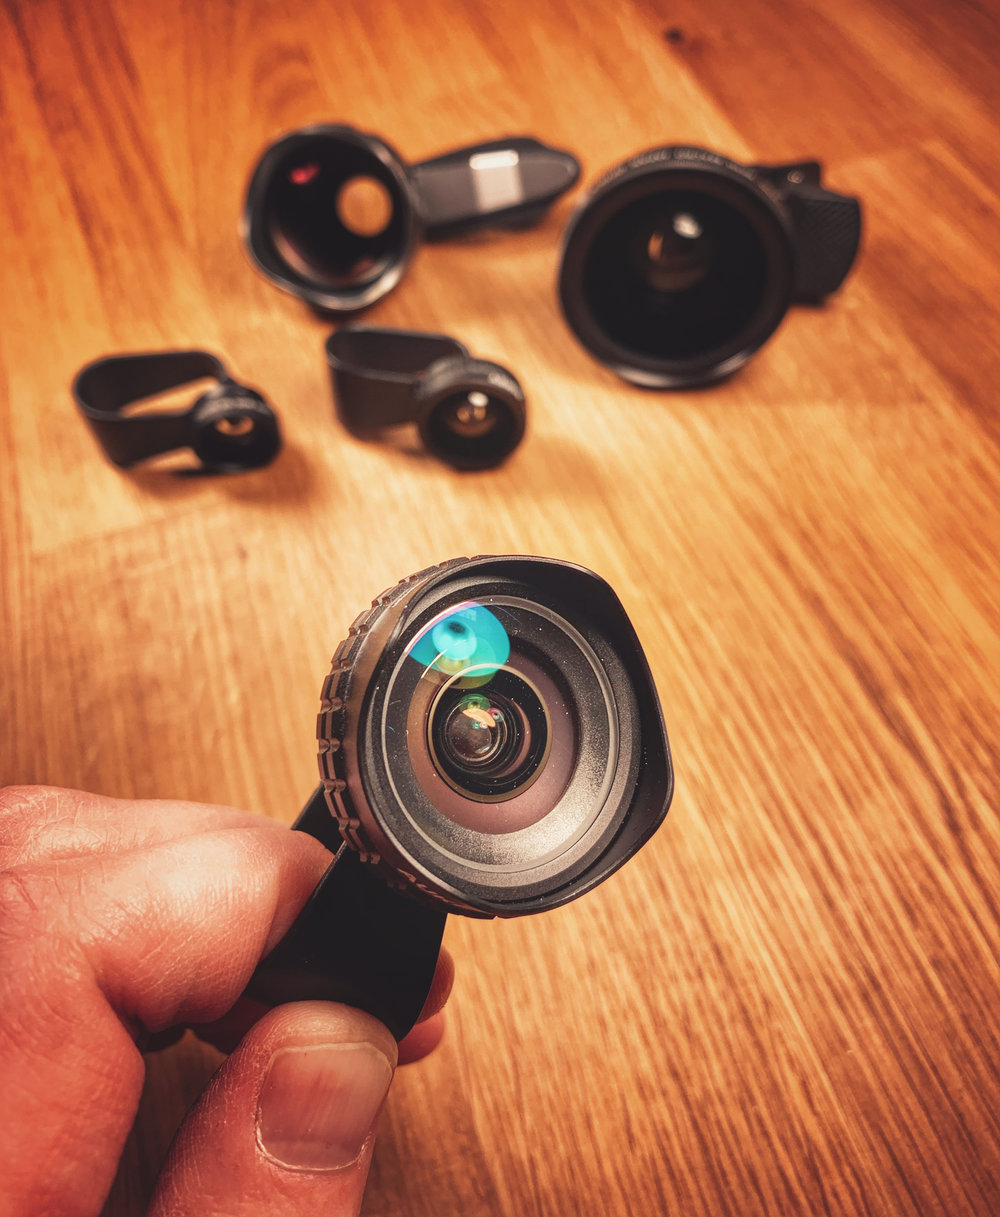 Smartphone clip-on lenses can be a great cost-effective way to up your smartphone photography game.